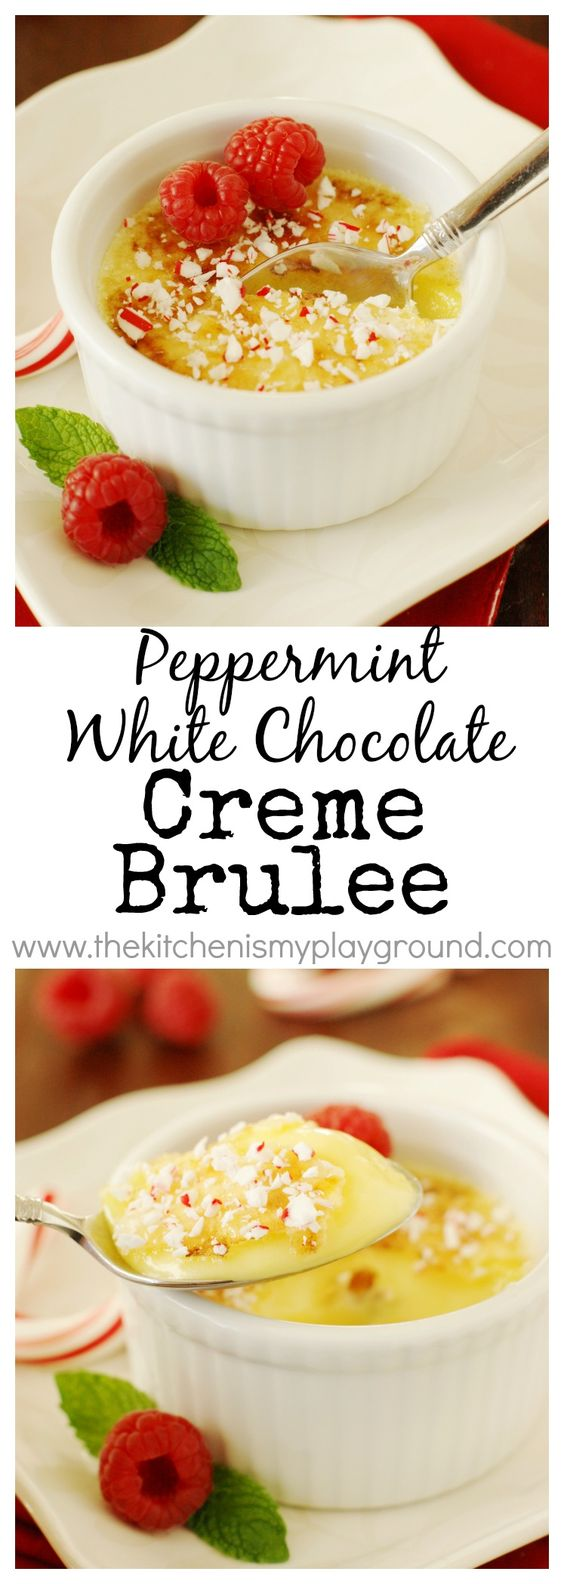 Chocolate creme brulee, Creme brulee and Peppermint on Pinterest